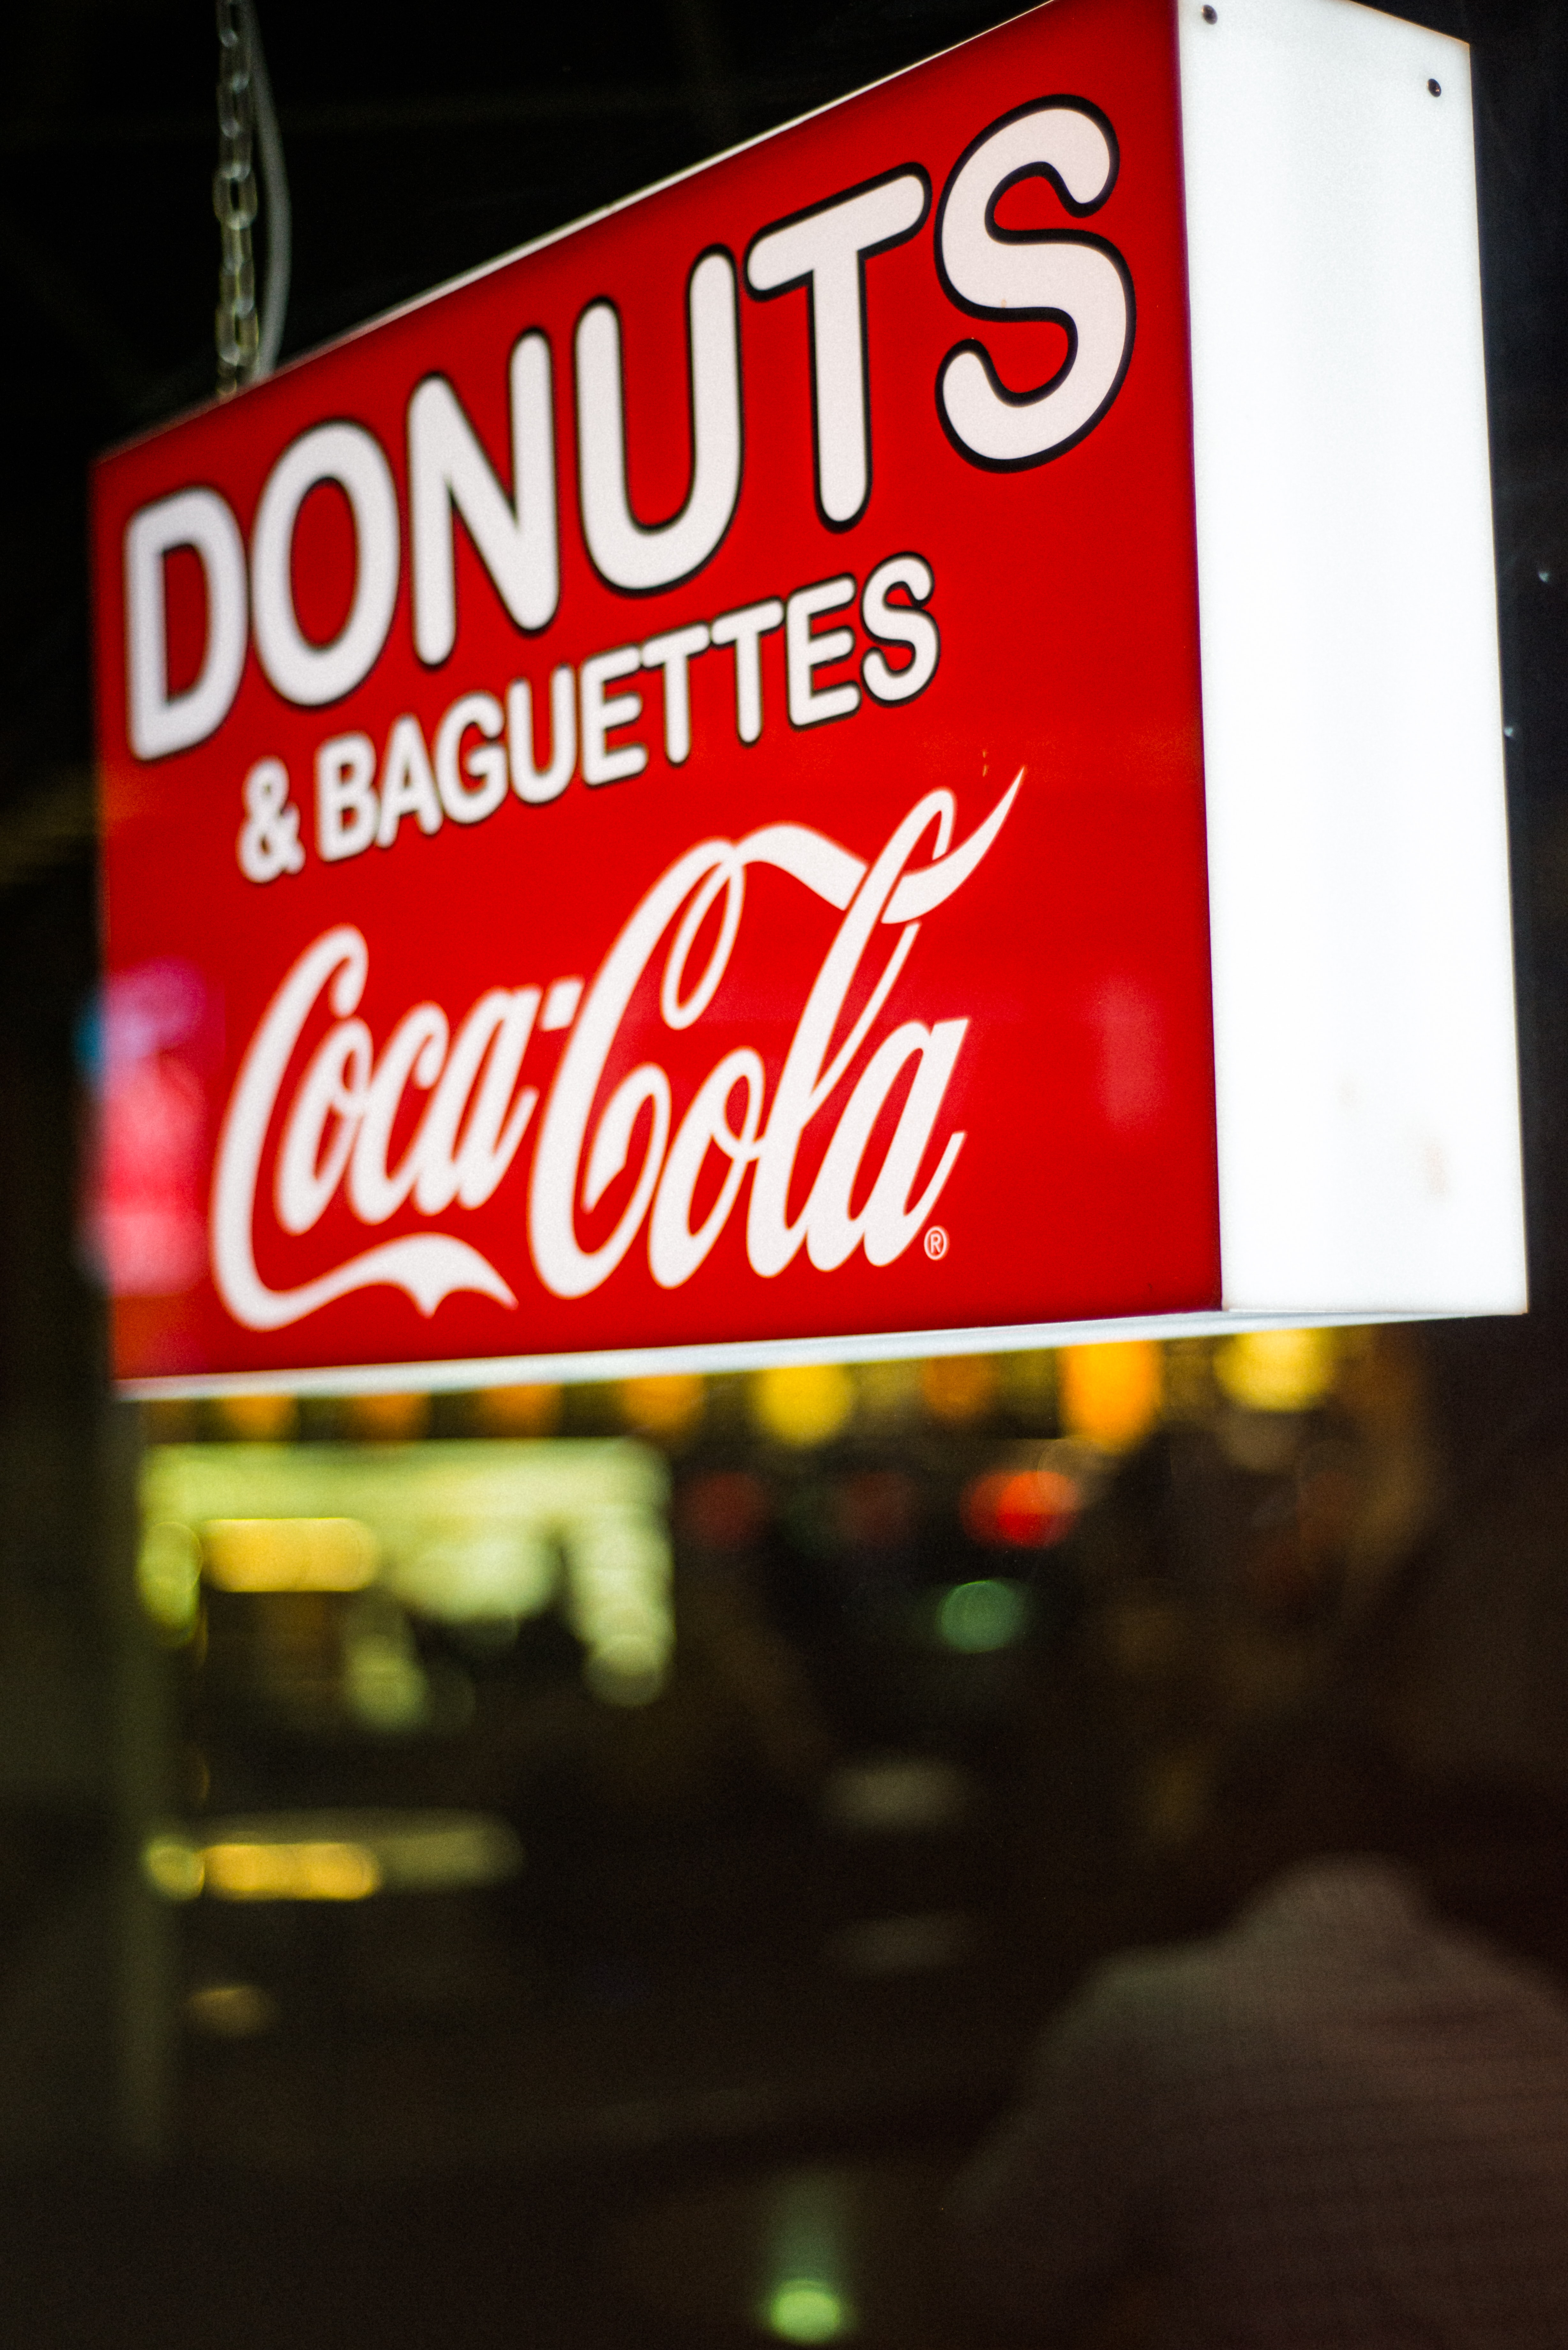 close photography of Donuts & Baguettes Coca-Cola signage